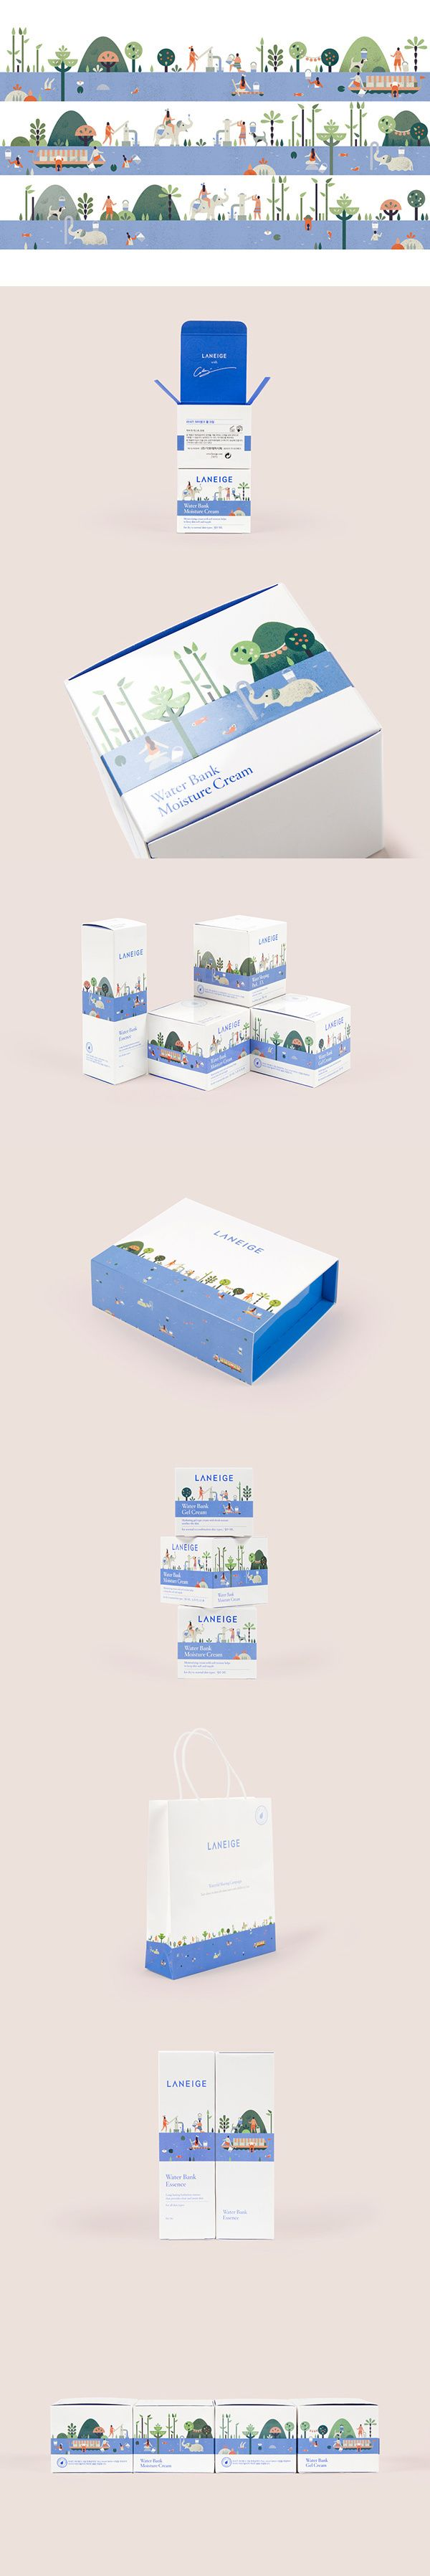 Laneige cosmetics with cute illustrations on the packaging PD